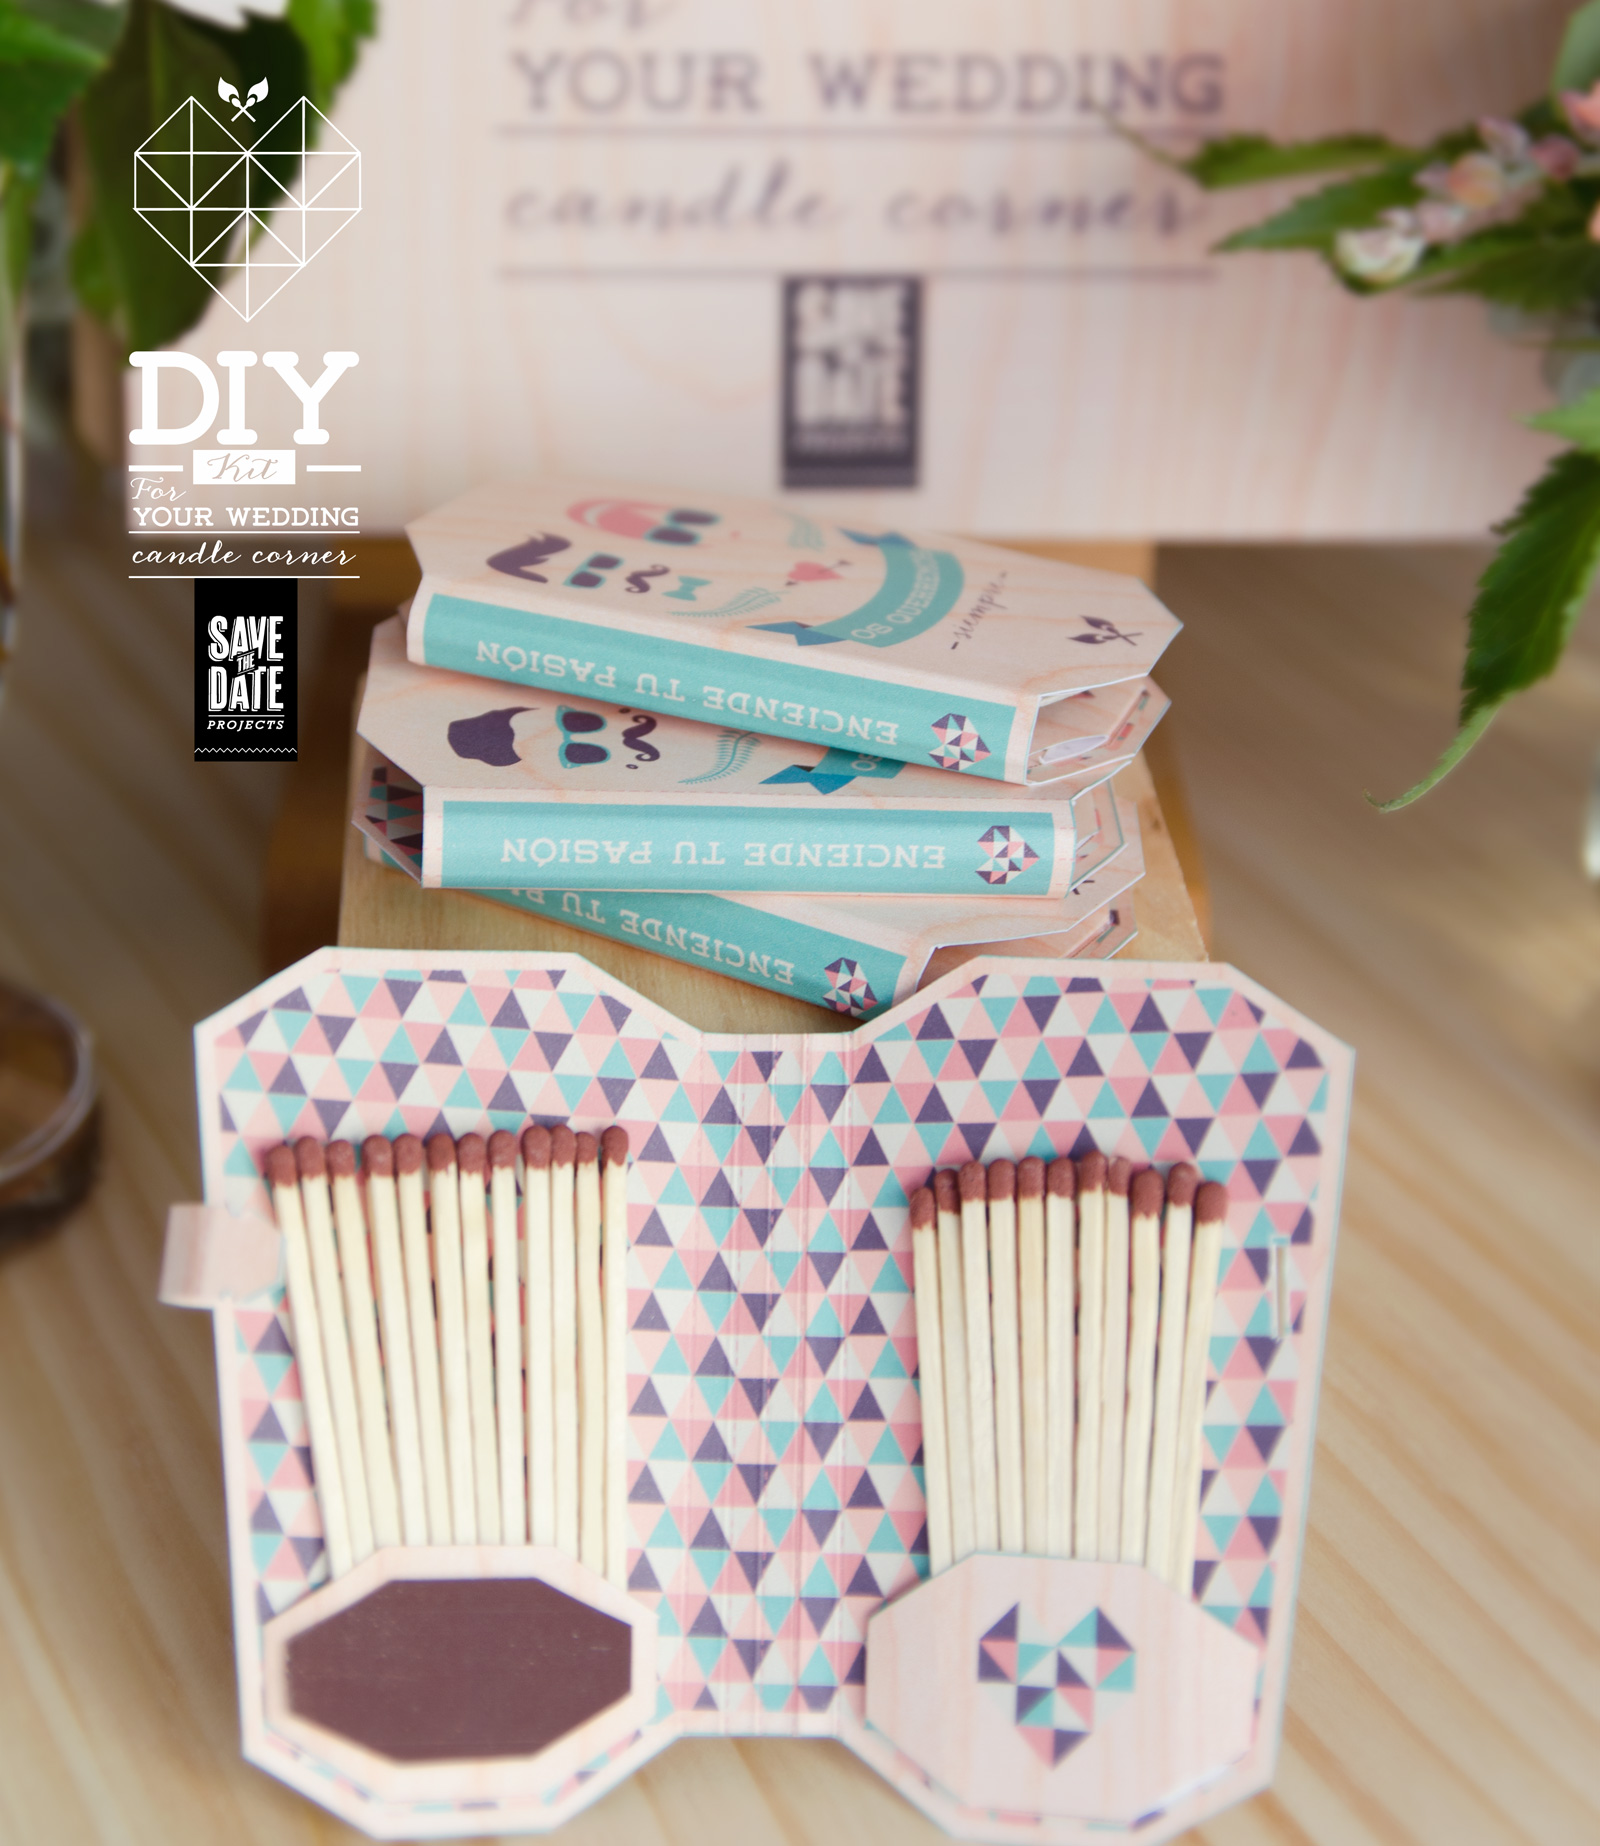 Pack diy hipster save the date projects tienda online - Diy para bodas ...